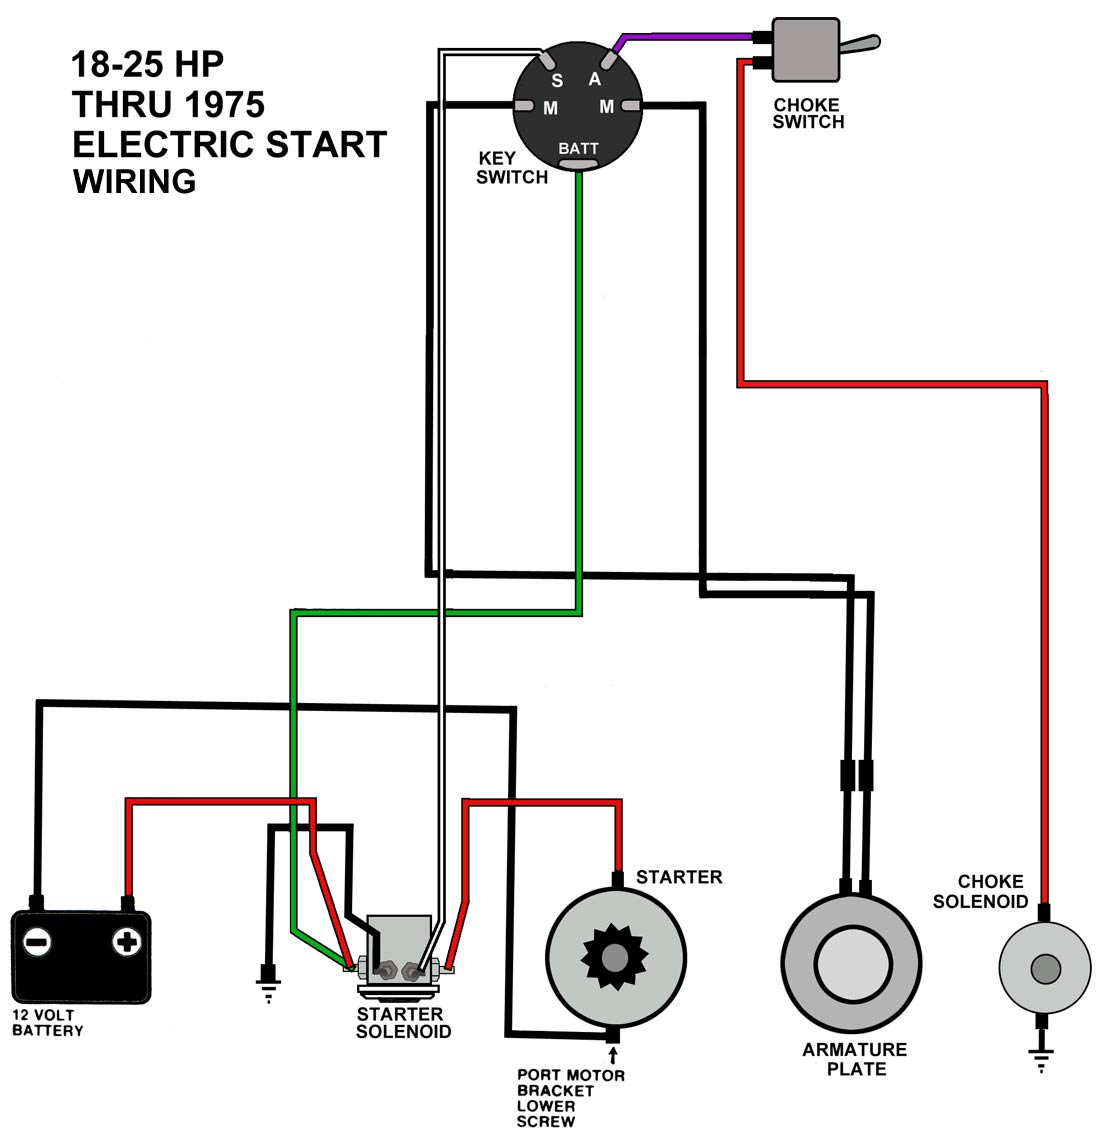 Pleasing Ignition Wiring Diagram Wiring Library Wiring Digital Resources Indicompassionincorg